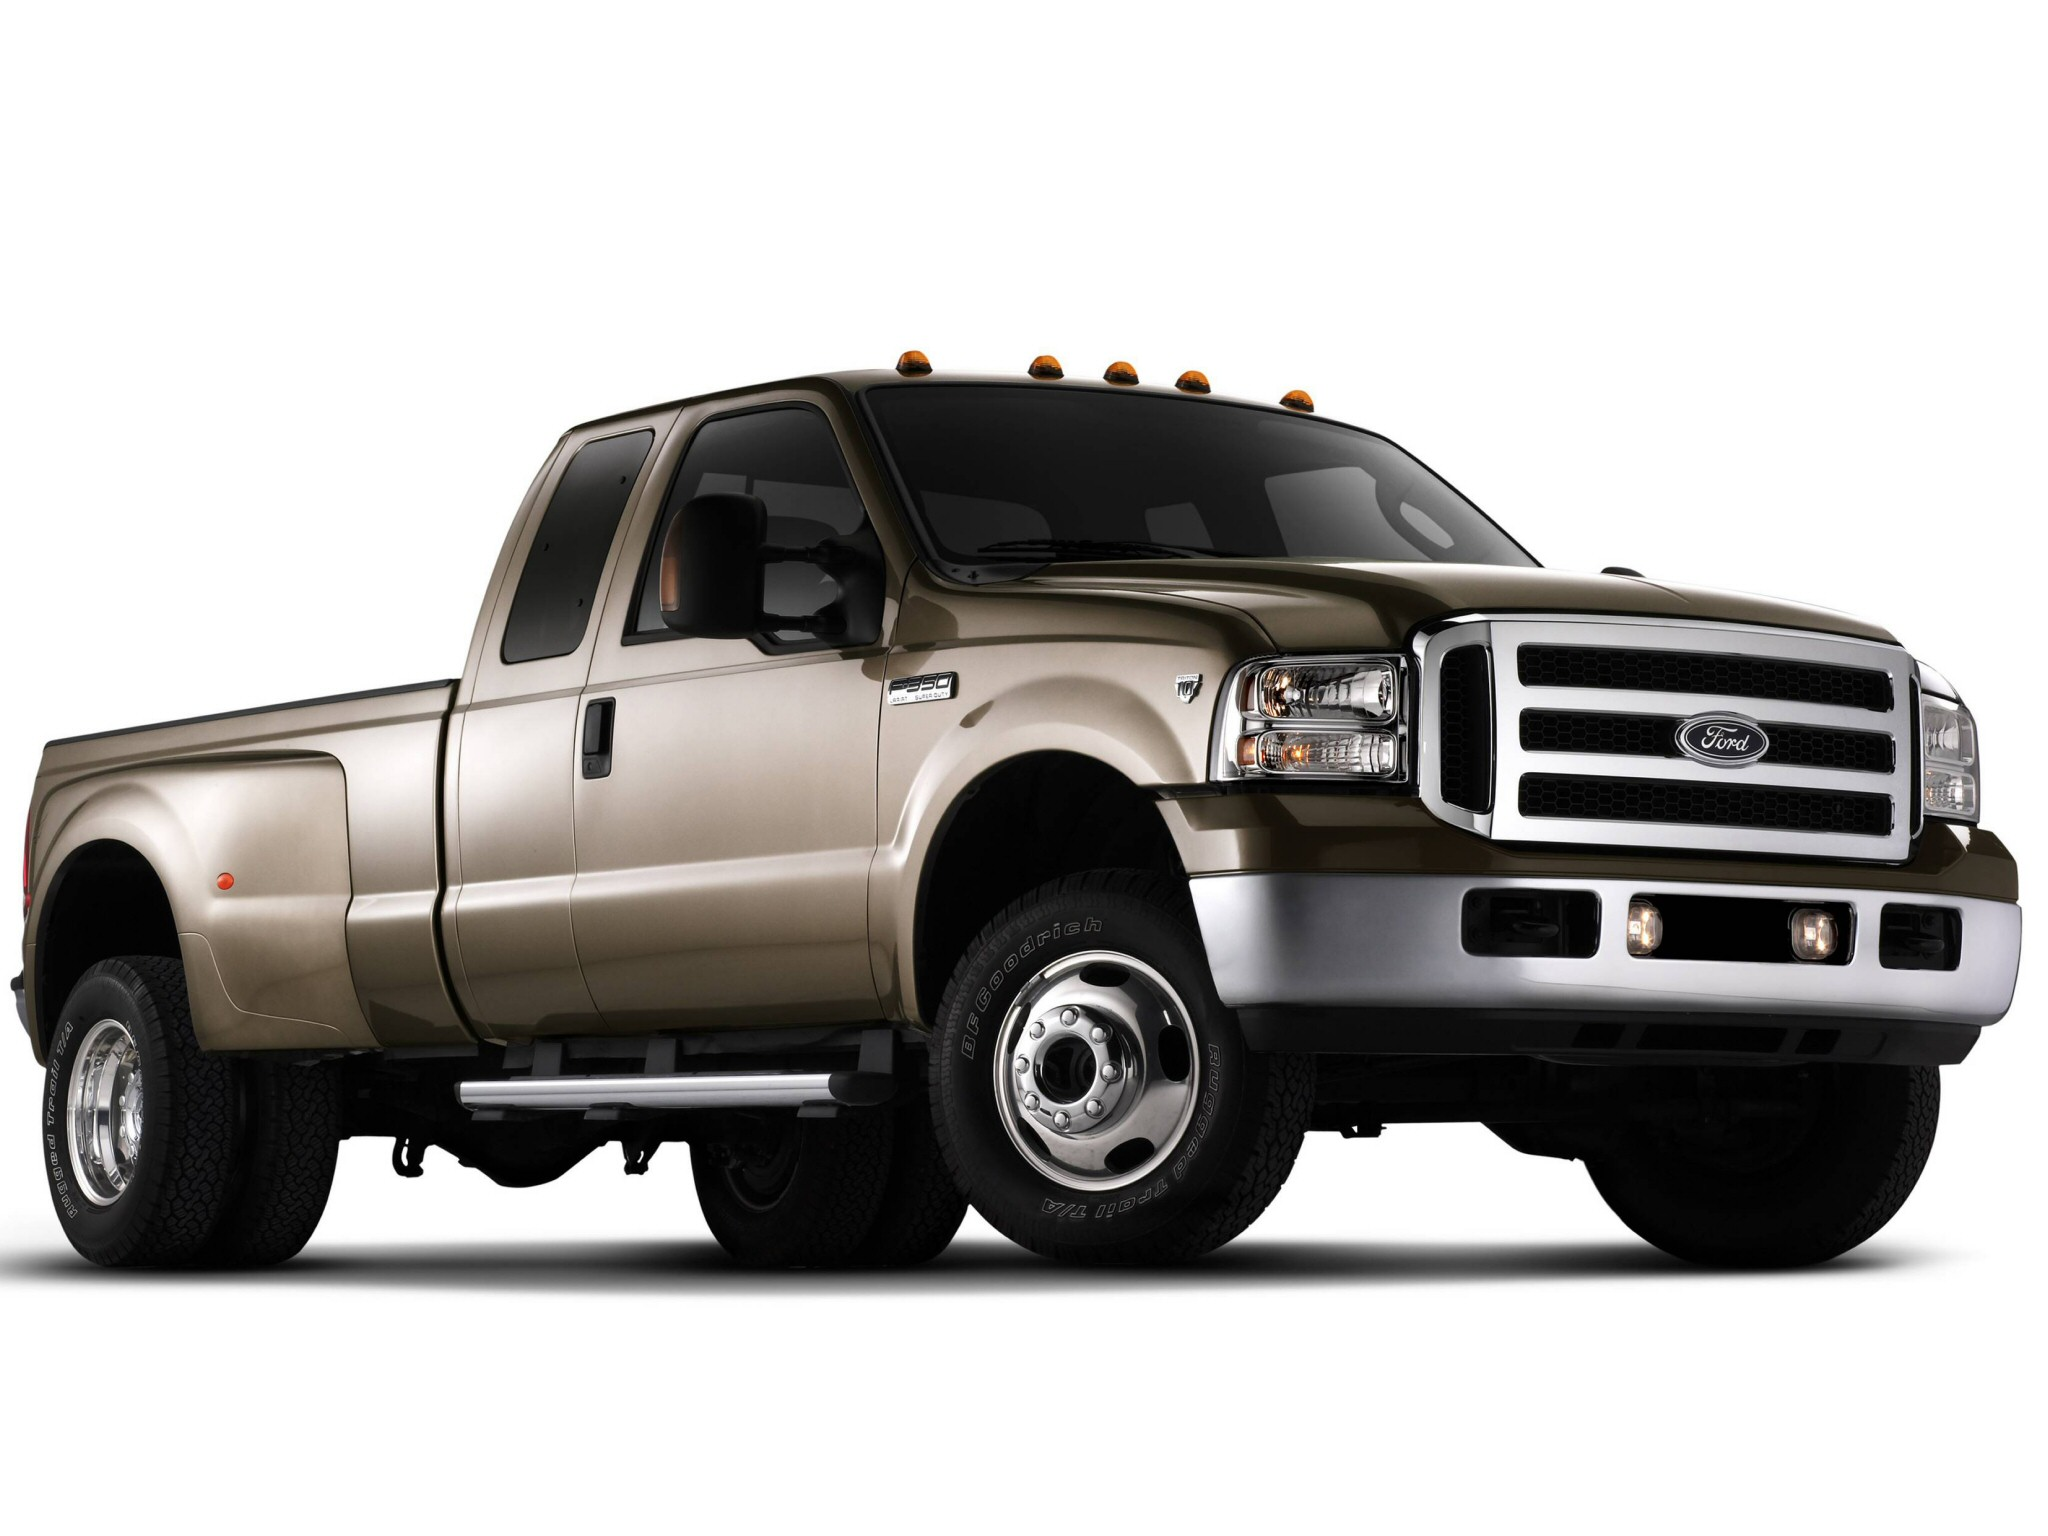 2008 Ford F-350 Super Duty #13